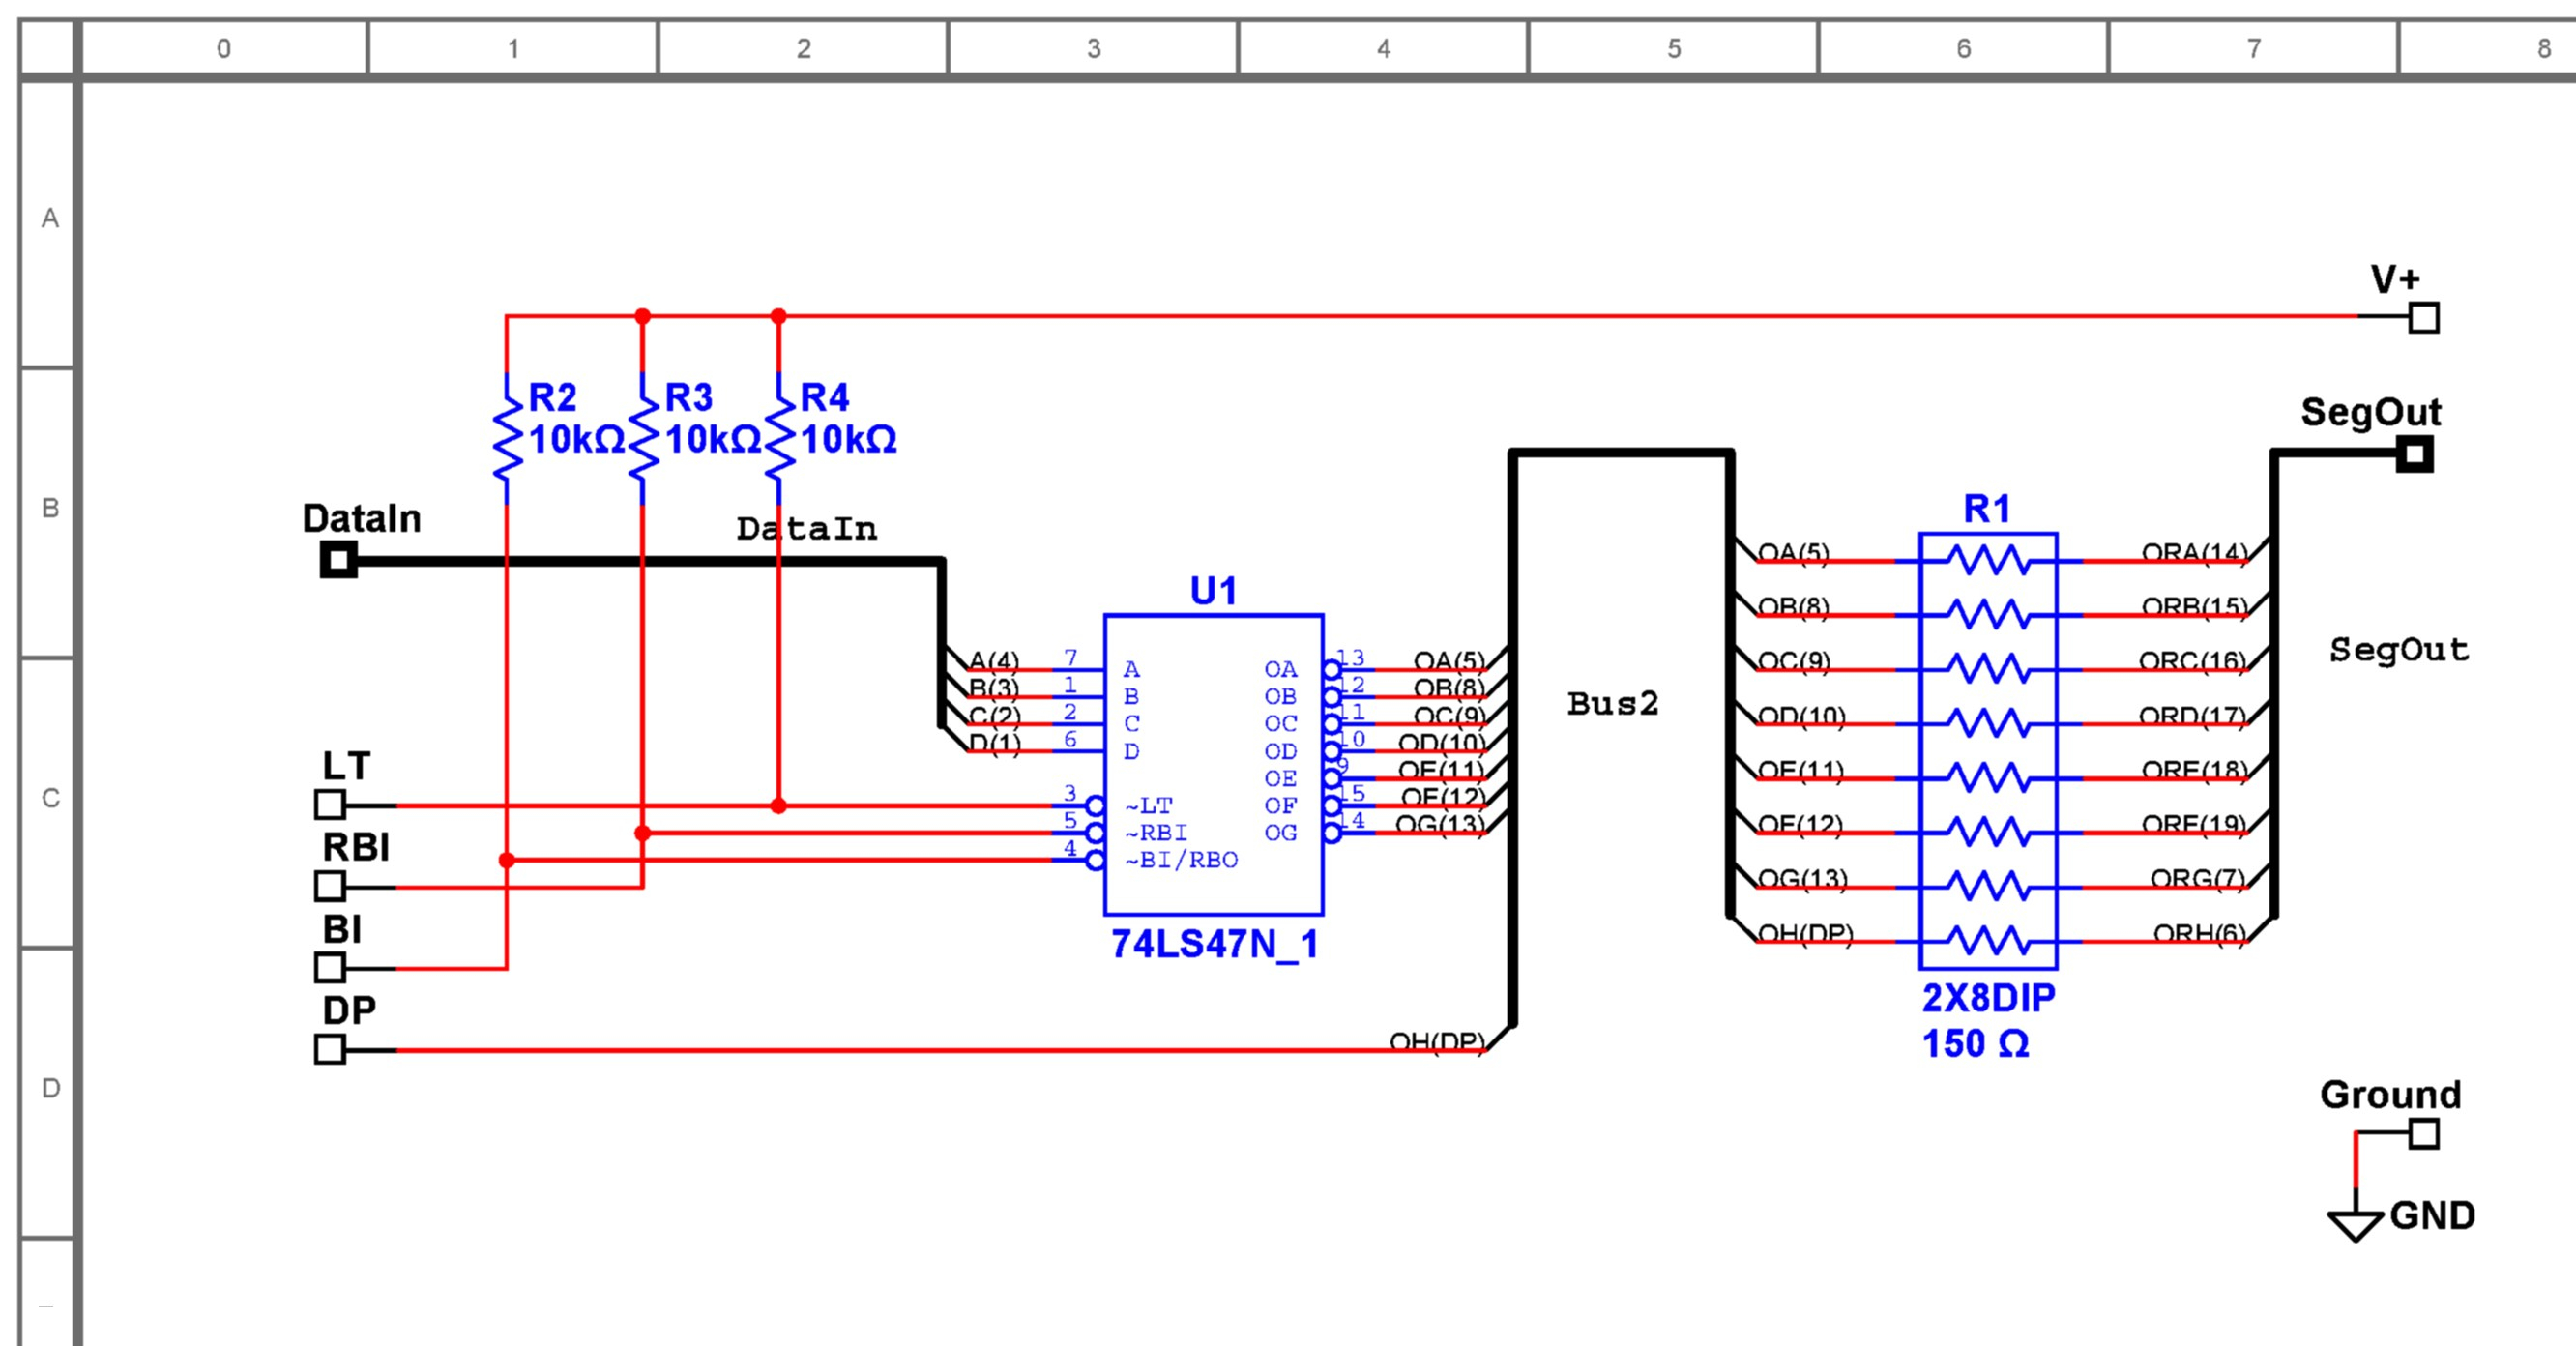 wiring diagram drawing software Collection-Circuit Diagram Program New Up Counter Circuit Wiring Diagram Ponents 17-h